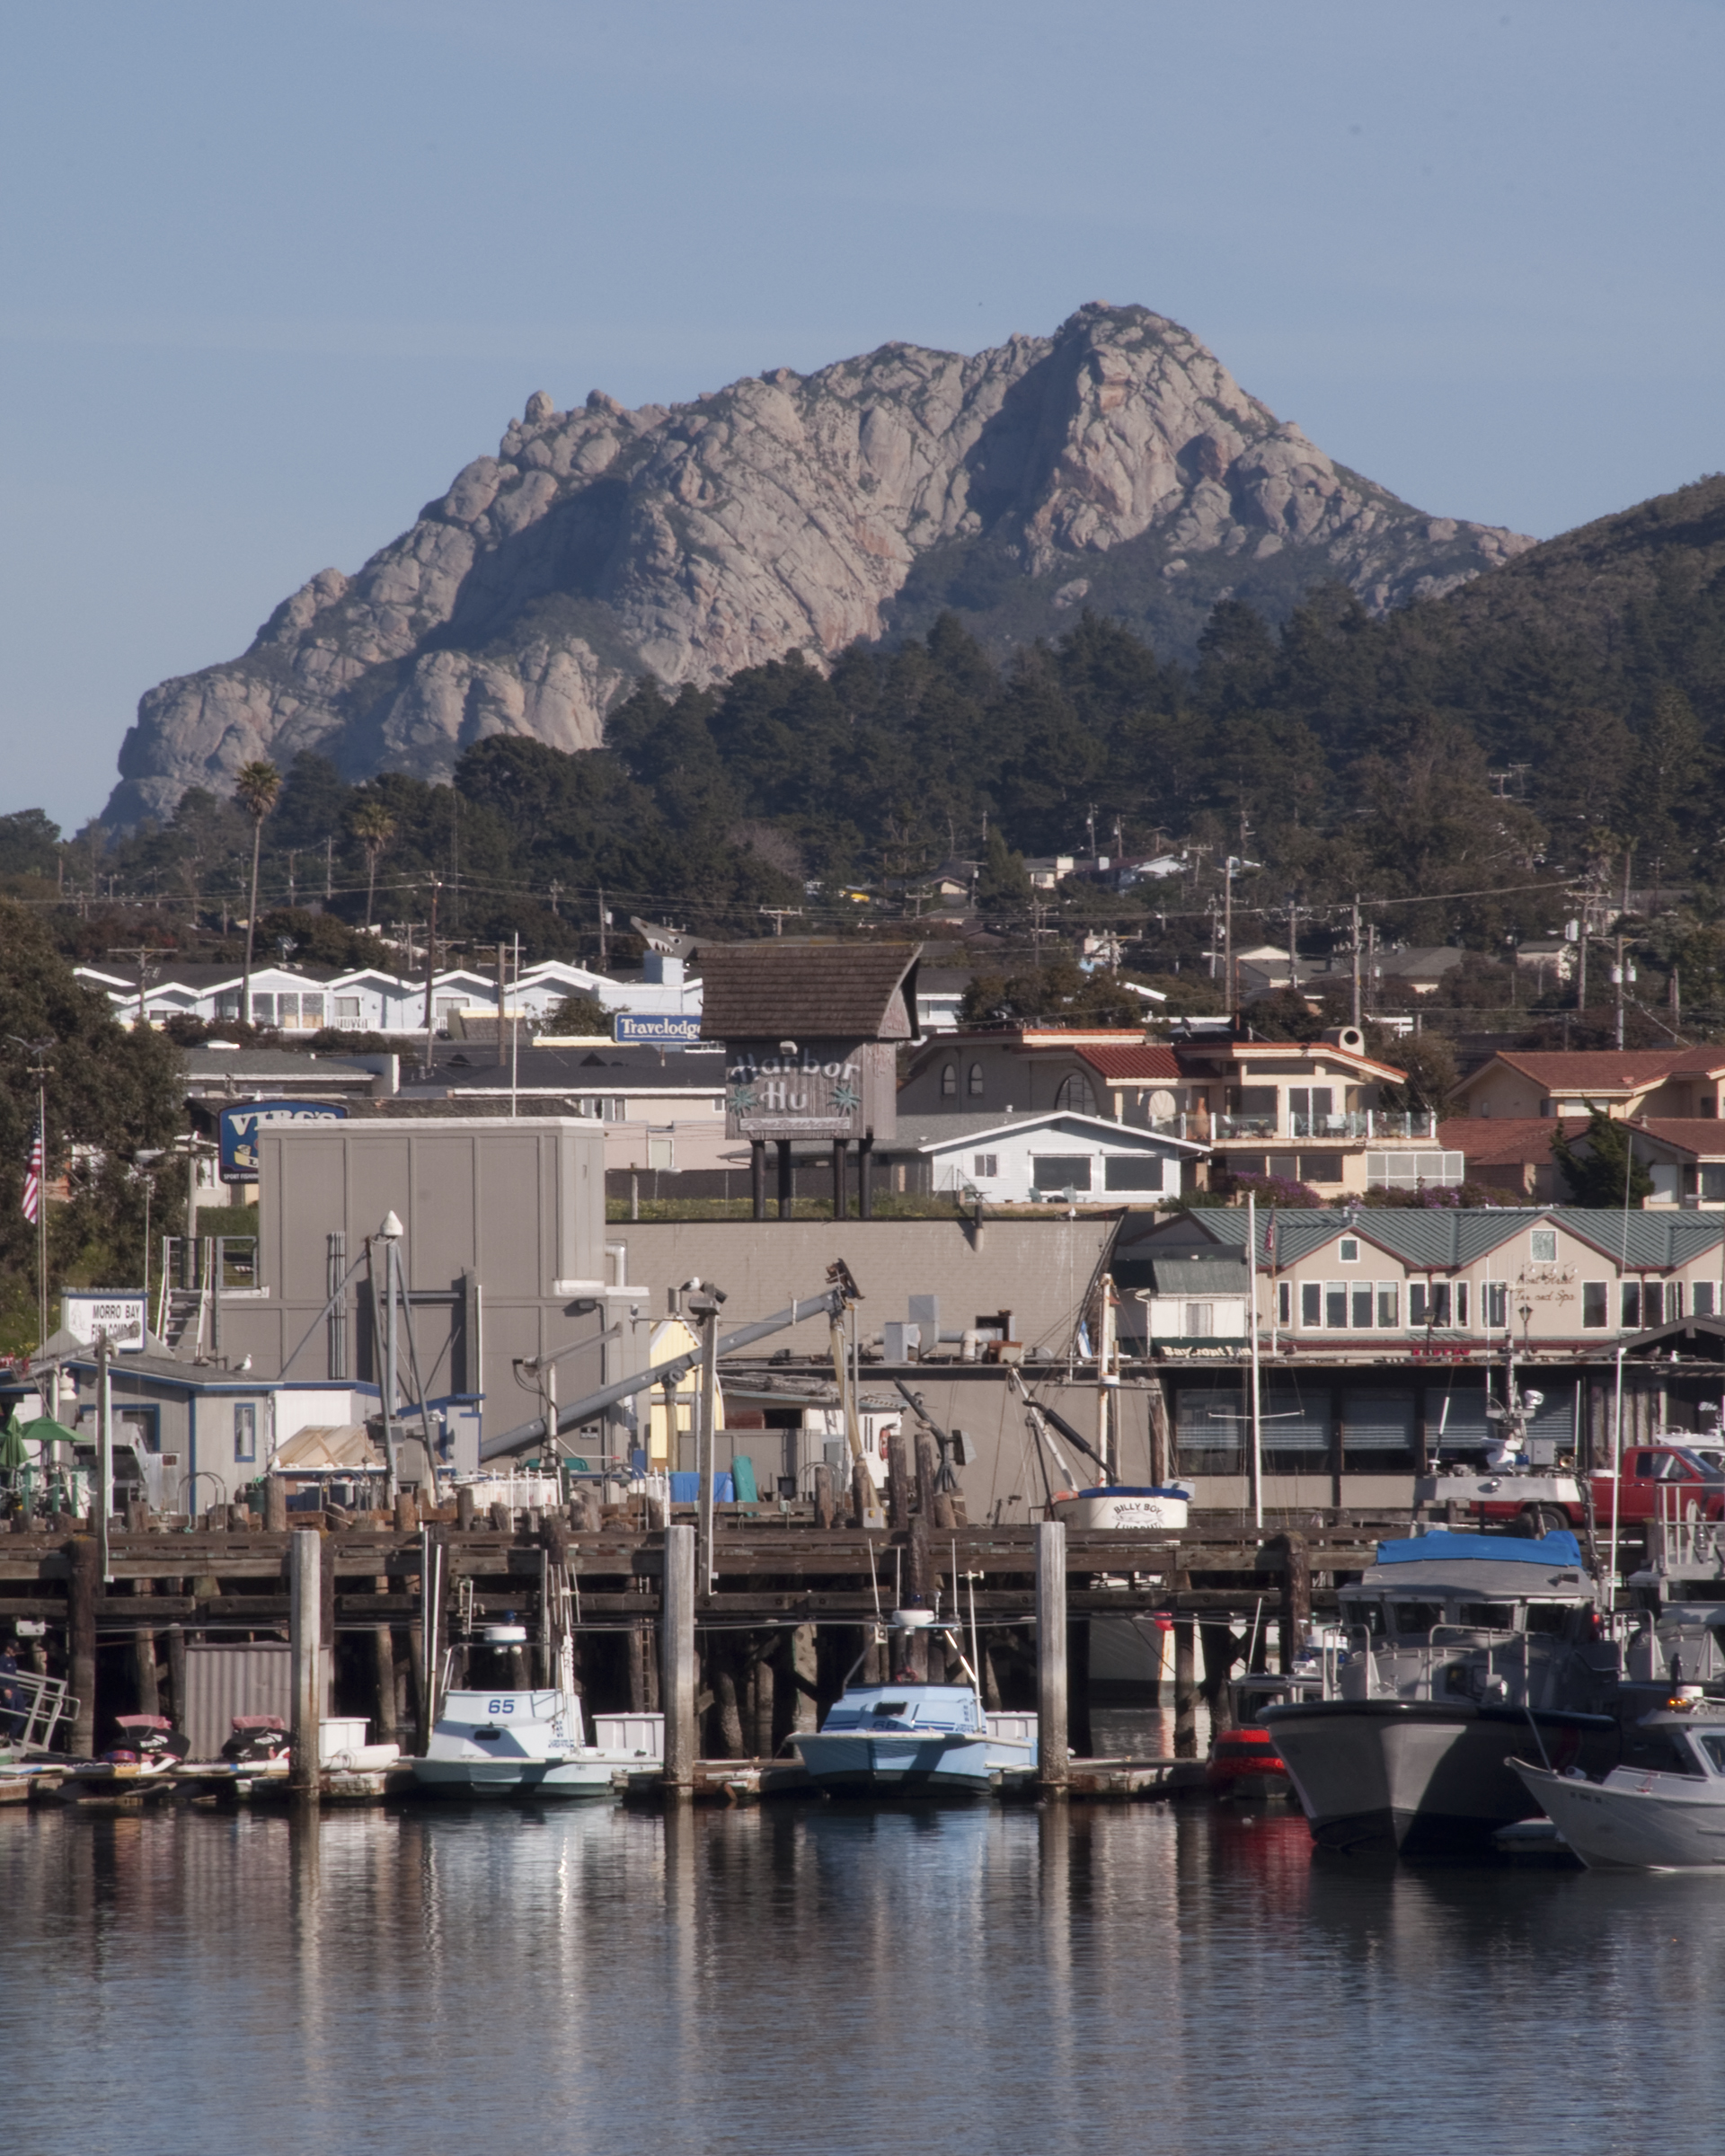 Morro Bay - Majestic Peak 2010